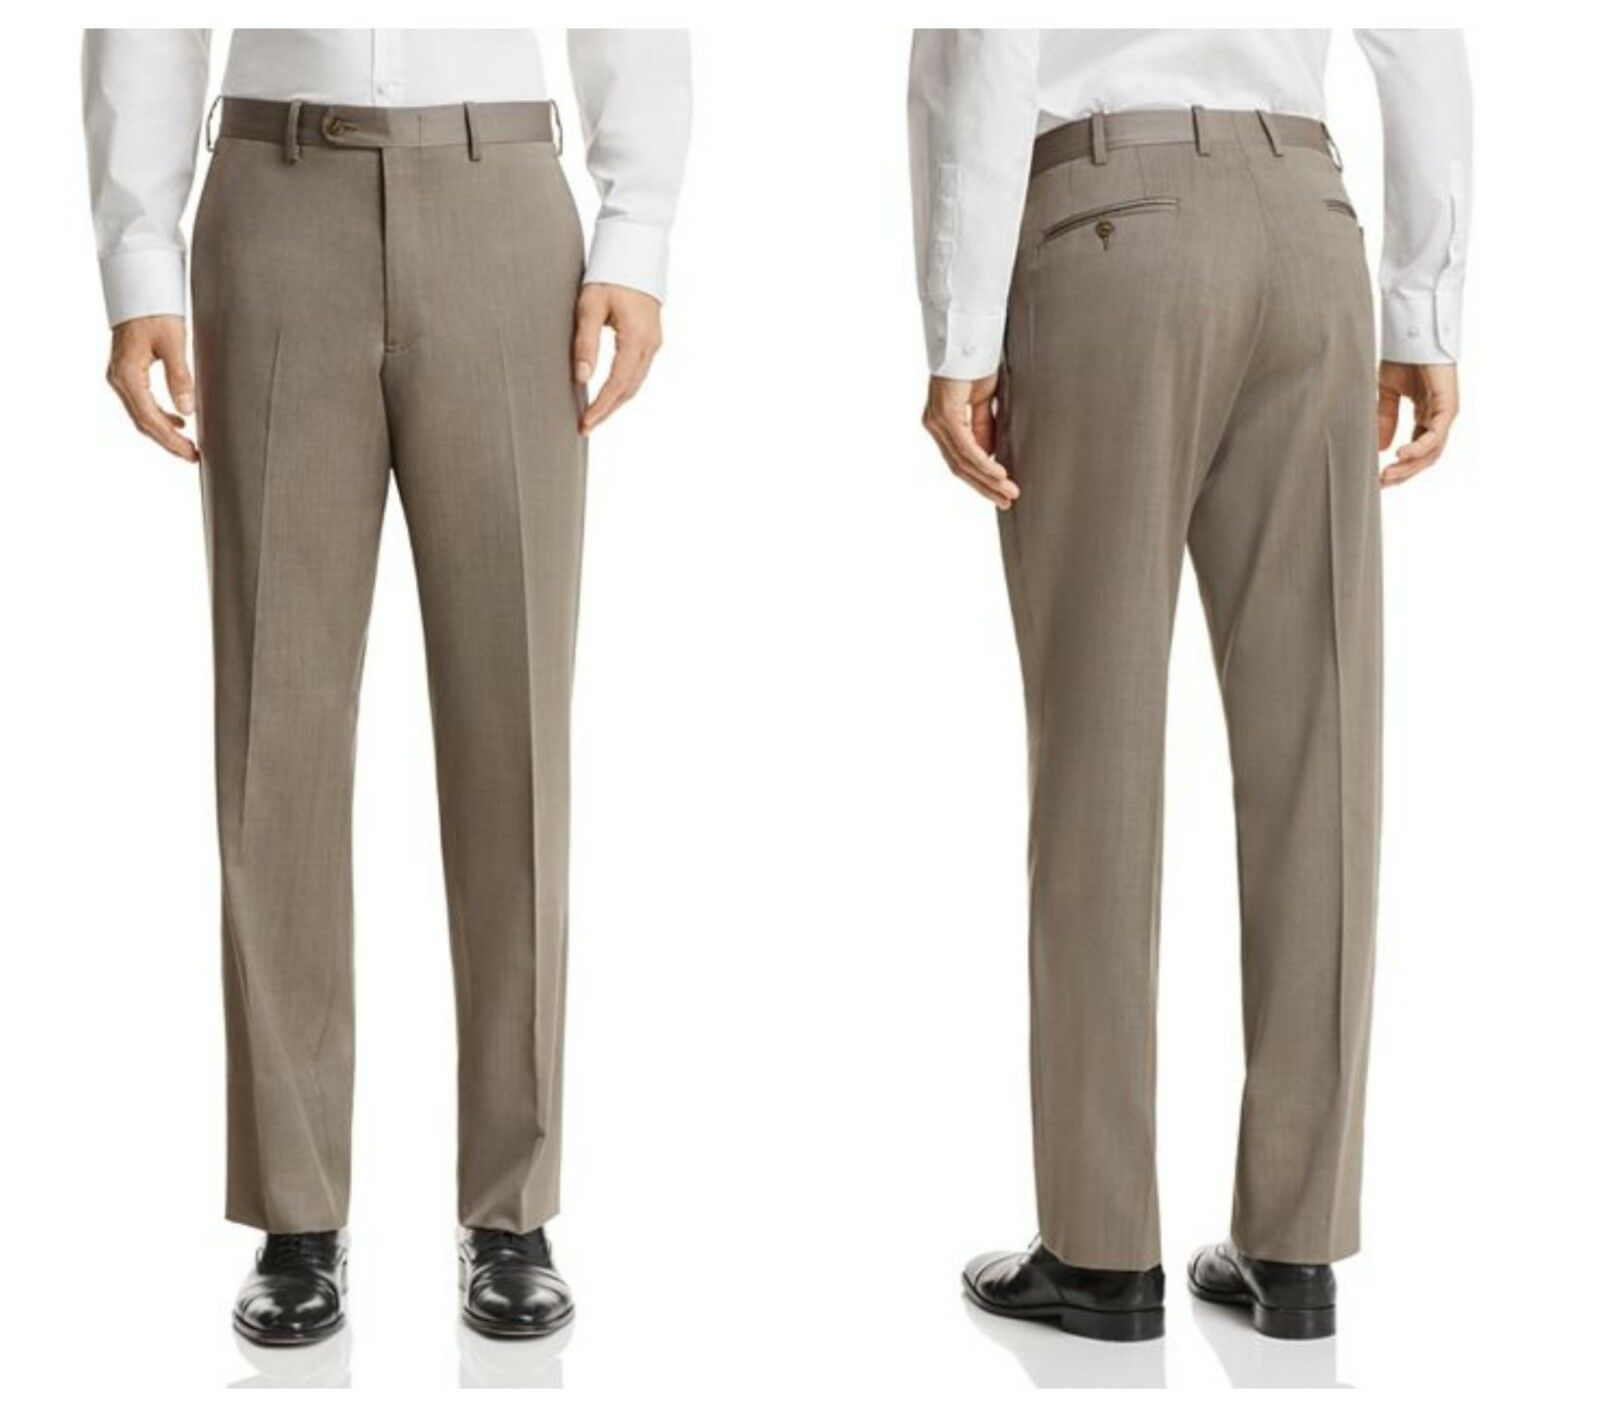 BLOOMINGSDALE  MENS LIGHT BROWN  WOOL DRESS  PANTS   Sz 36R    155